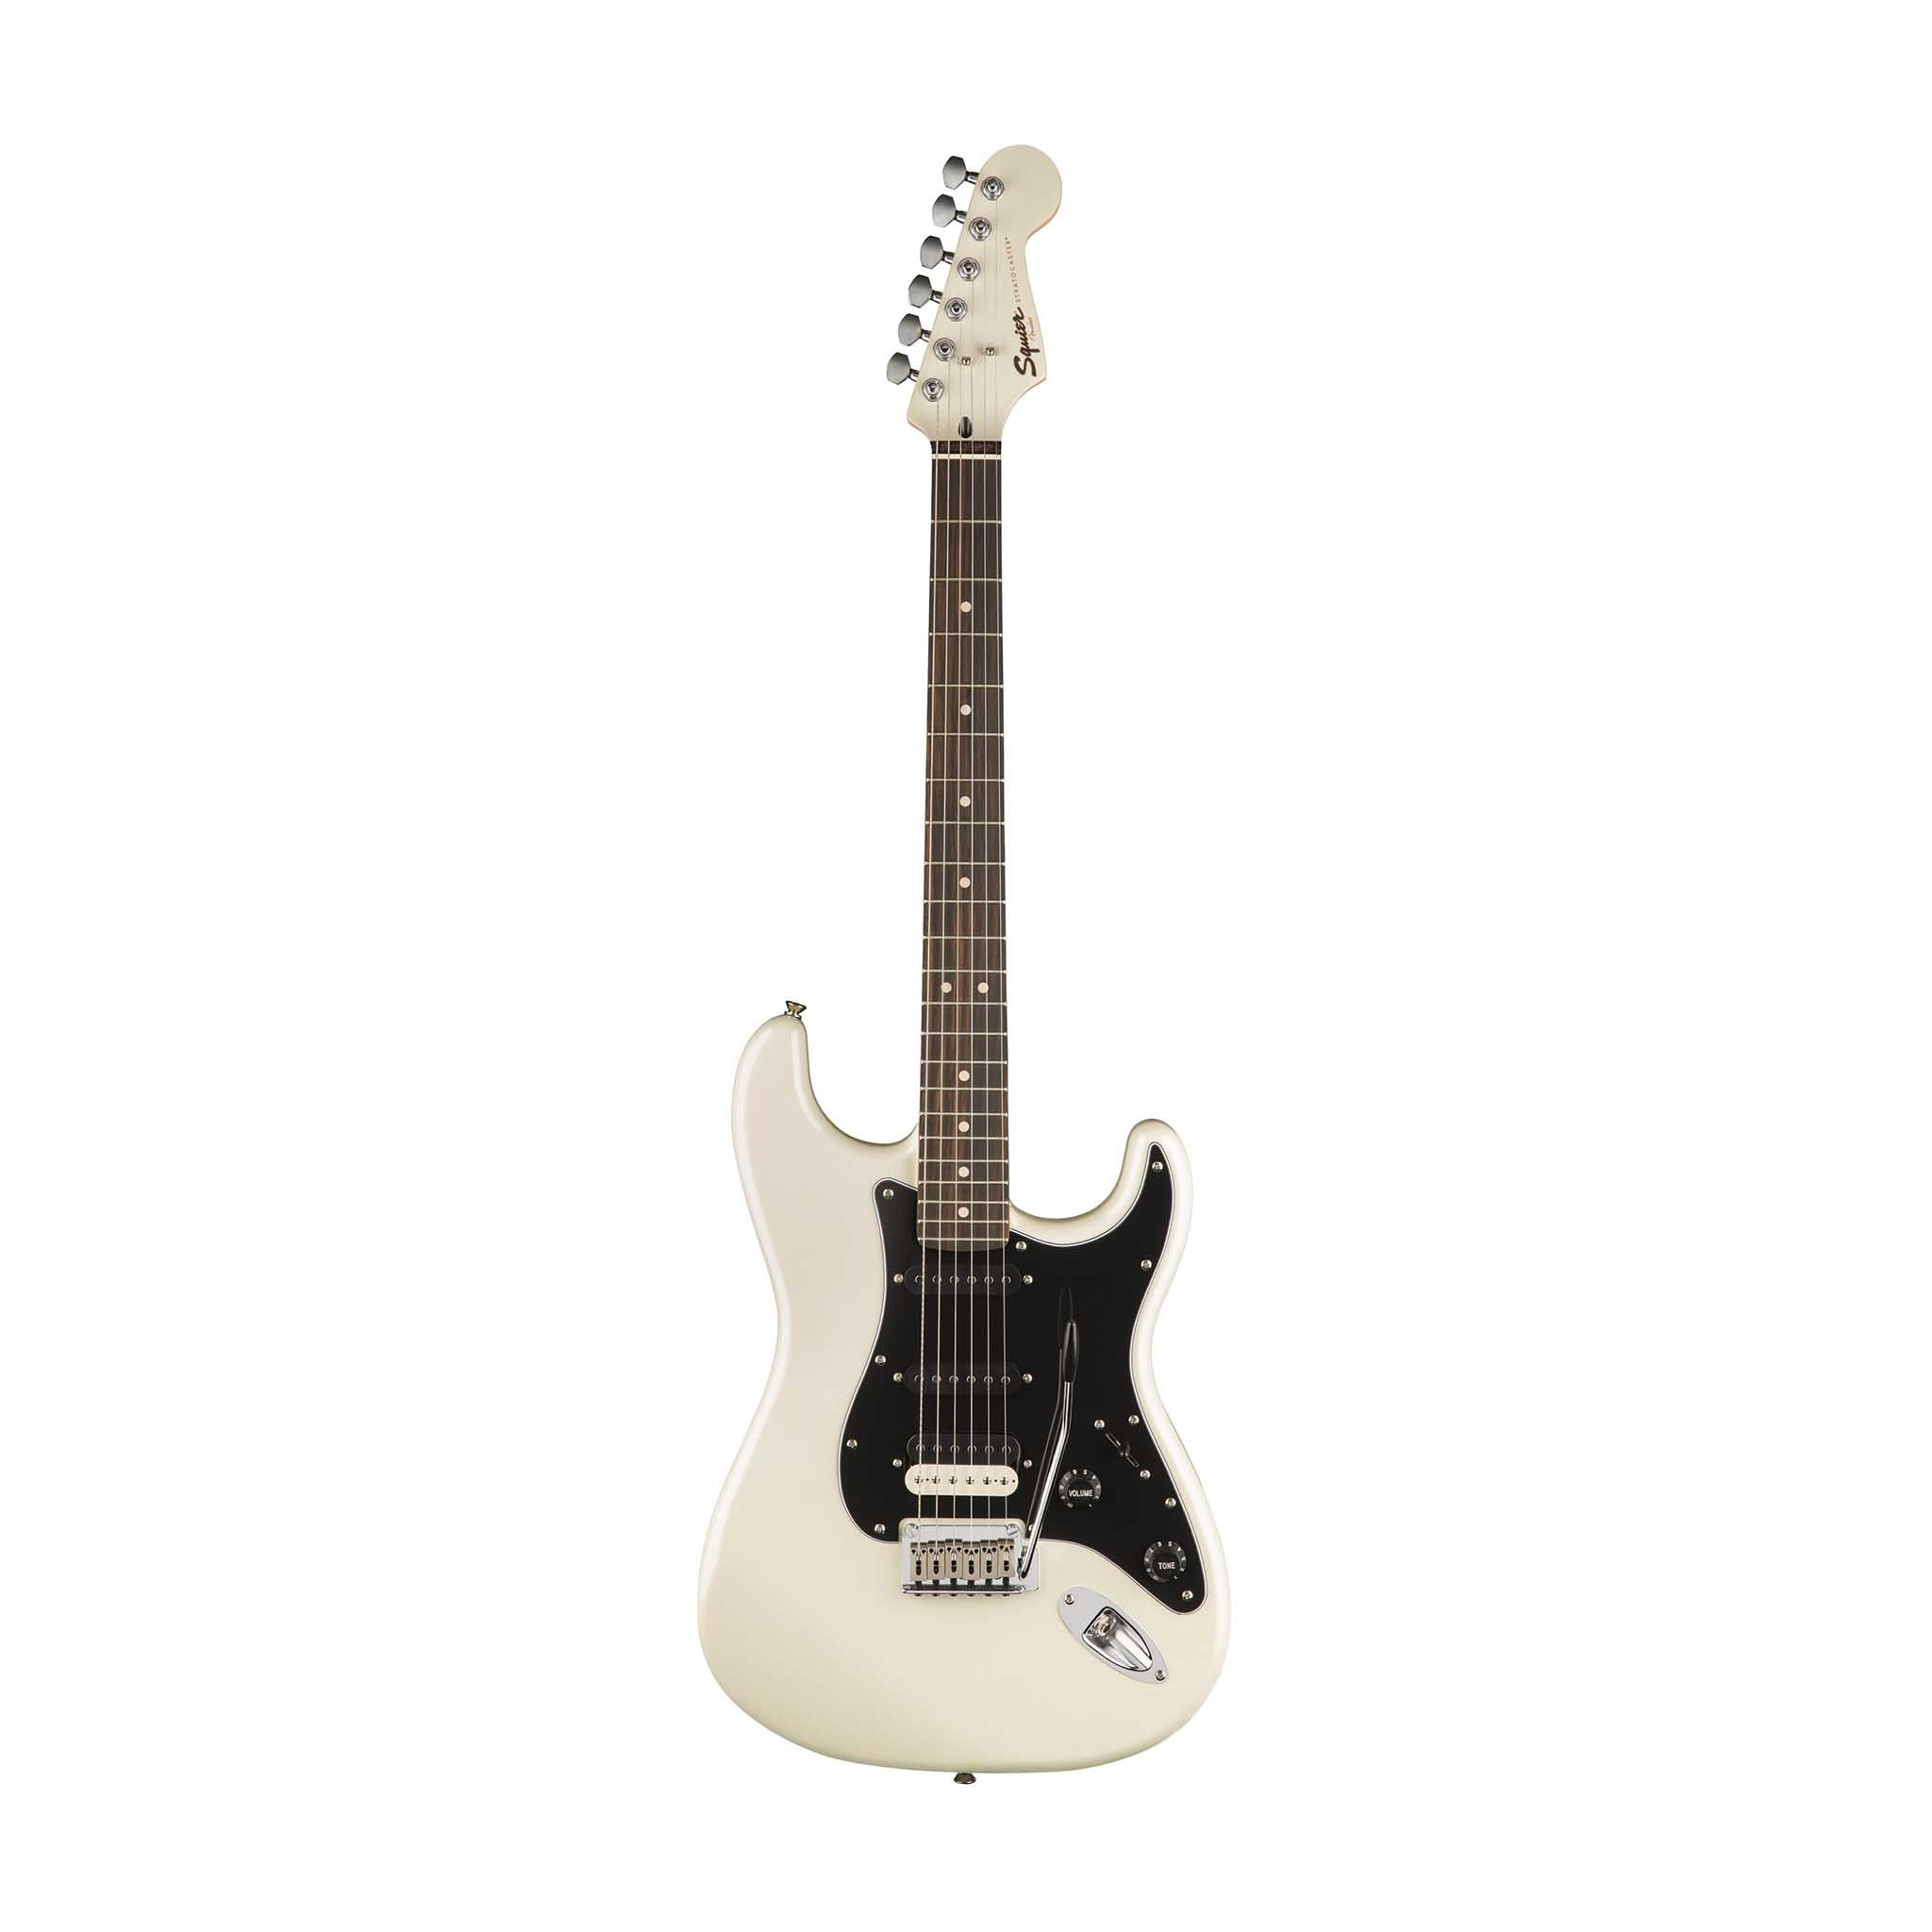 Squier Contemporary HSS Stratocaster Electric Guitar, Rosewood F